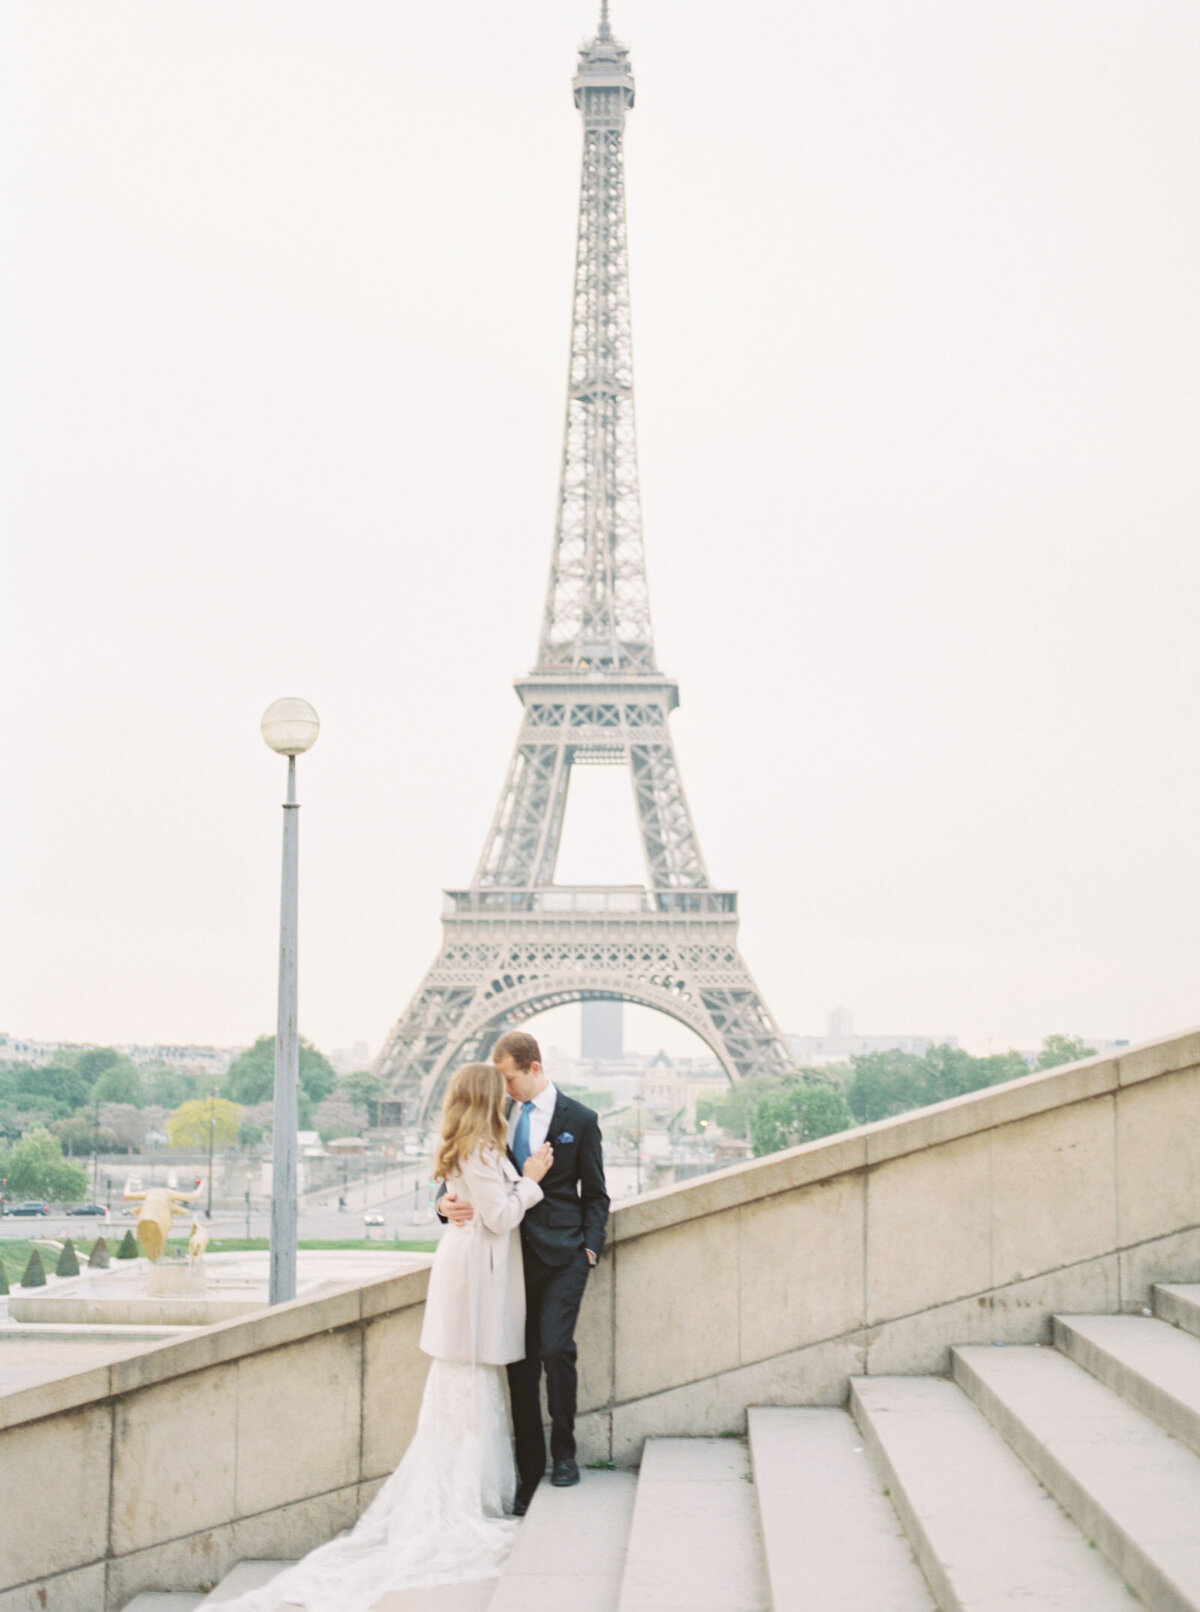 marcelaploskerphotography-paris_wedding-1